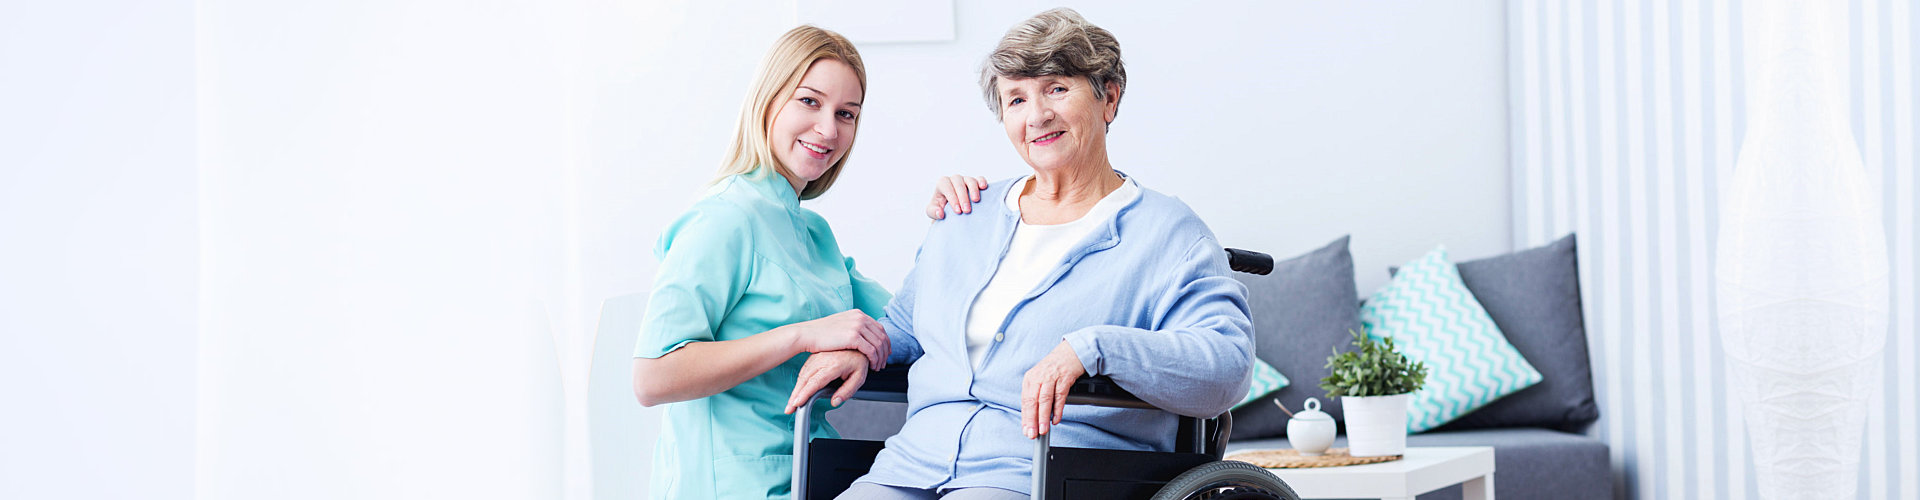 smiling senior woman on wheelchair with her caregiver